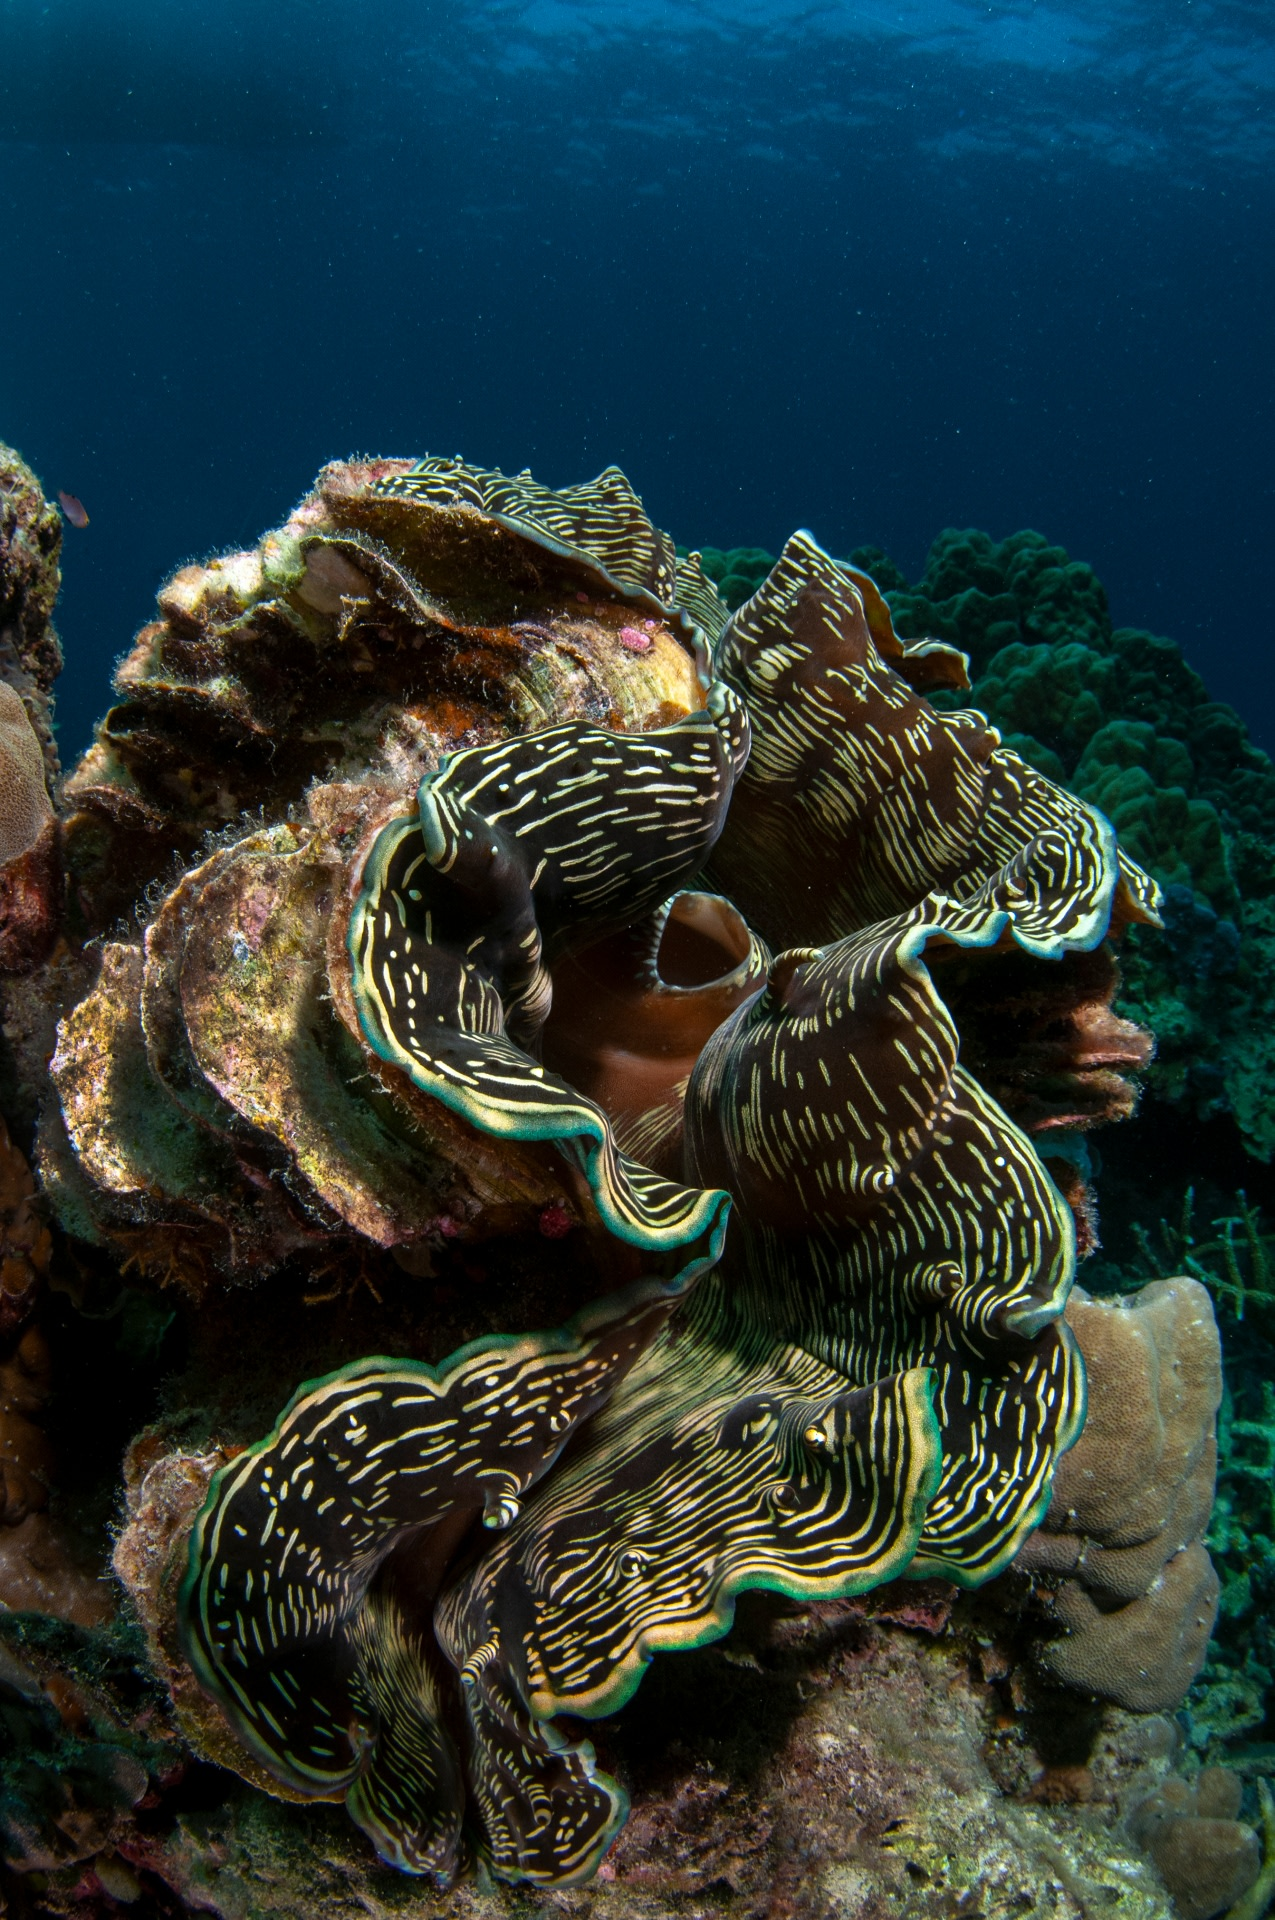 Giant clams can be so large that they become mini-ecosystems themselves, providing space for critters on its shell or between its folds. Photo: Umeed Mistry